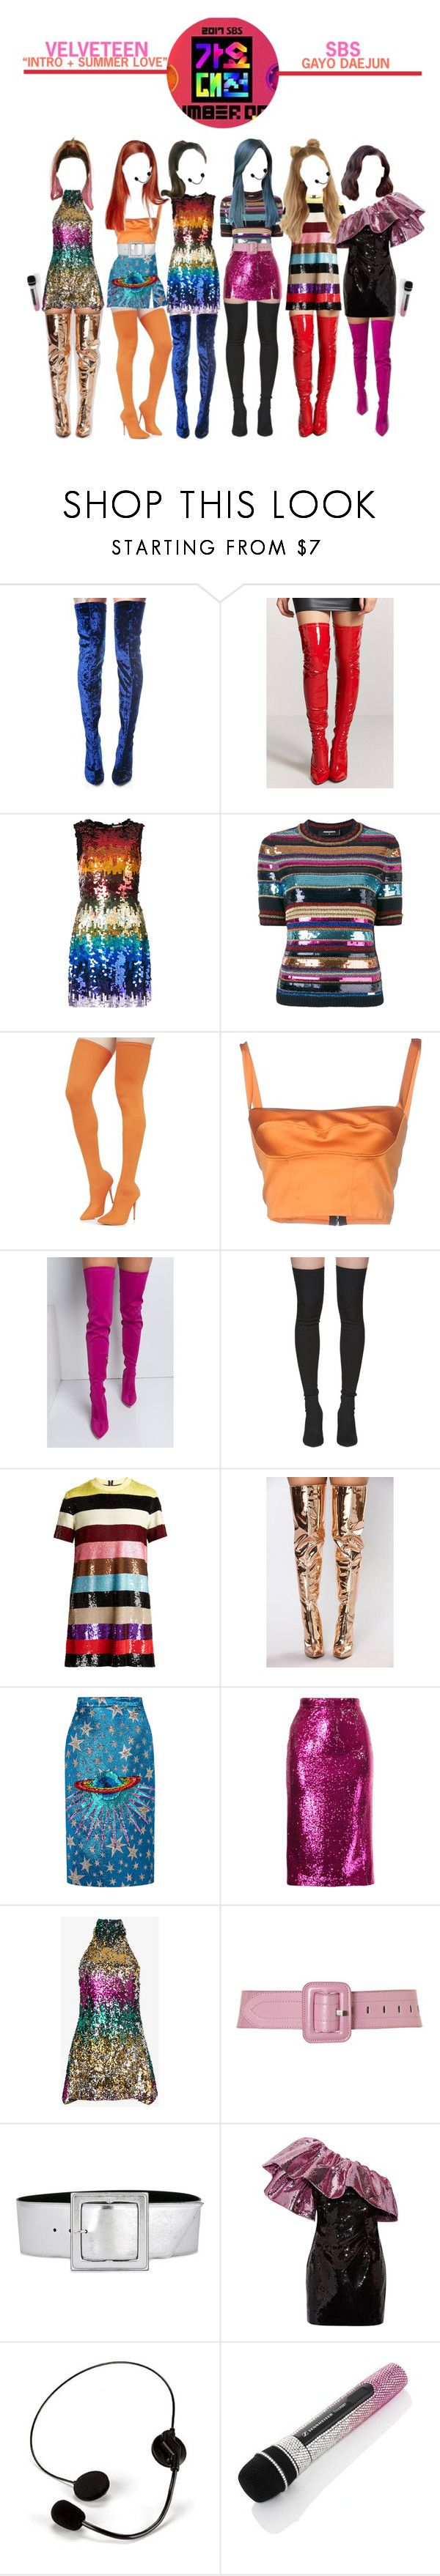 """""""«VELVETEEN- SBS GAYO DAEJUN»"""" by cw-entertainment ❤ liked on Polyvore featuring Cape Robbin, Forever 21, Alice + Olivia, Dsquared2, Shoe Republic LA, Simona Corsellini, Yeezy by Kanye West, Ashish, Gucci and G.V.G.V."""